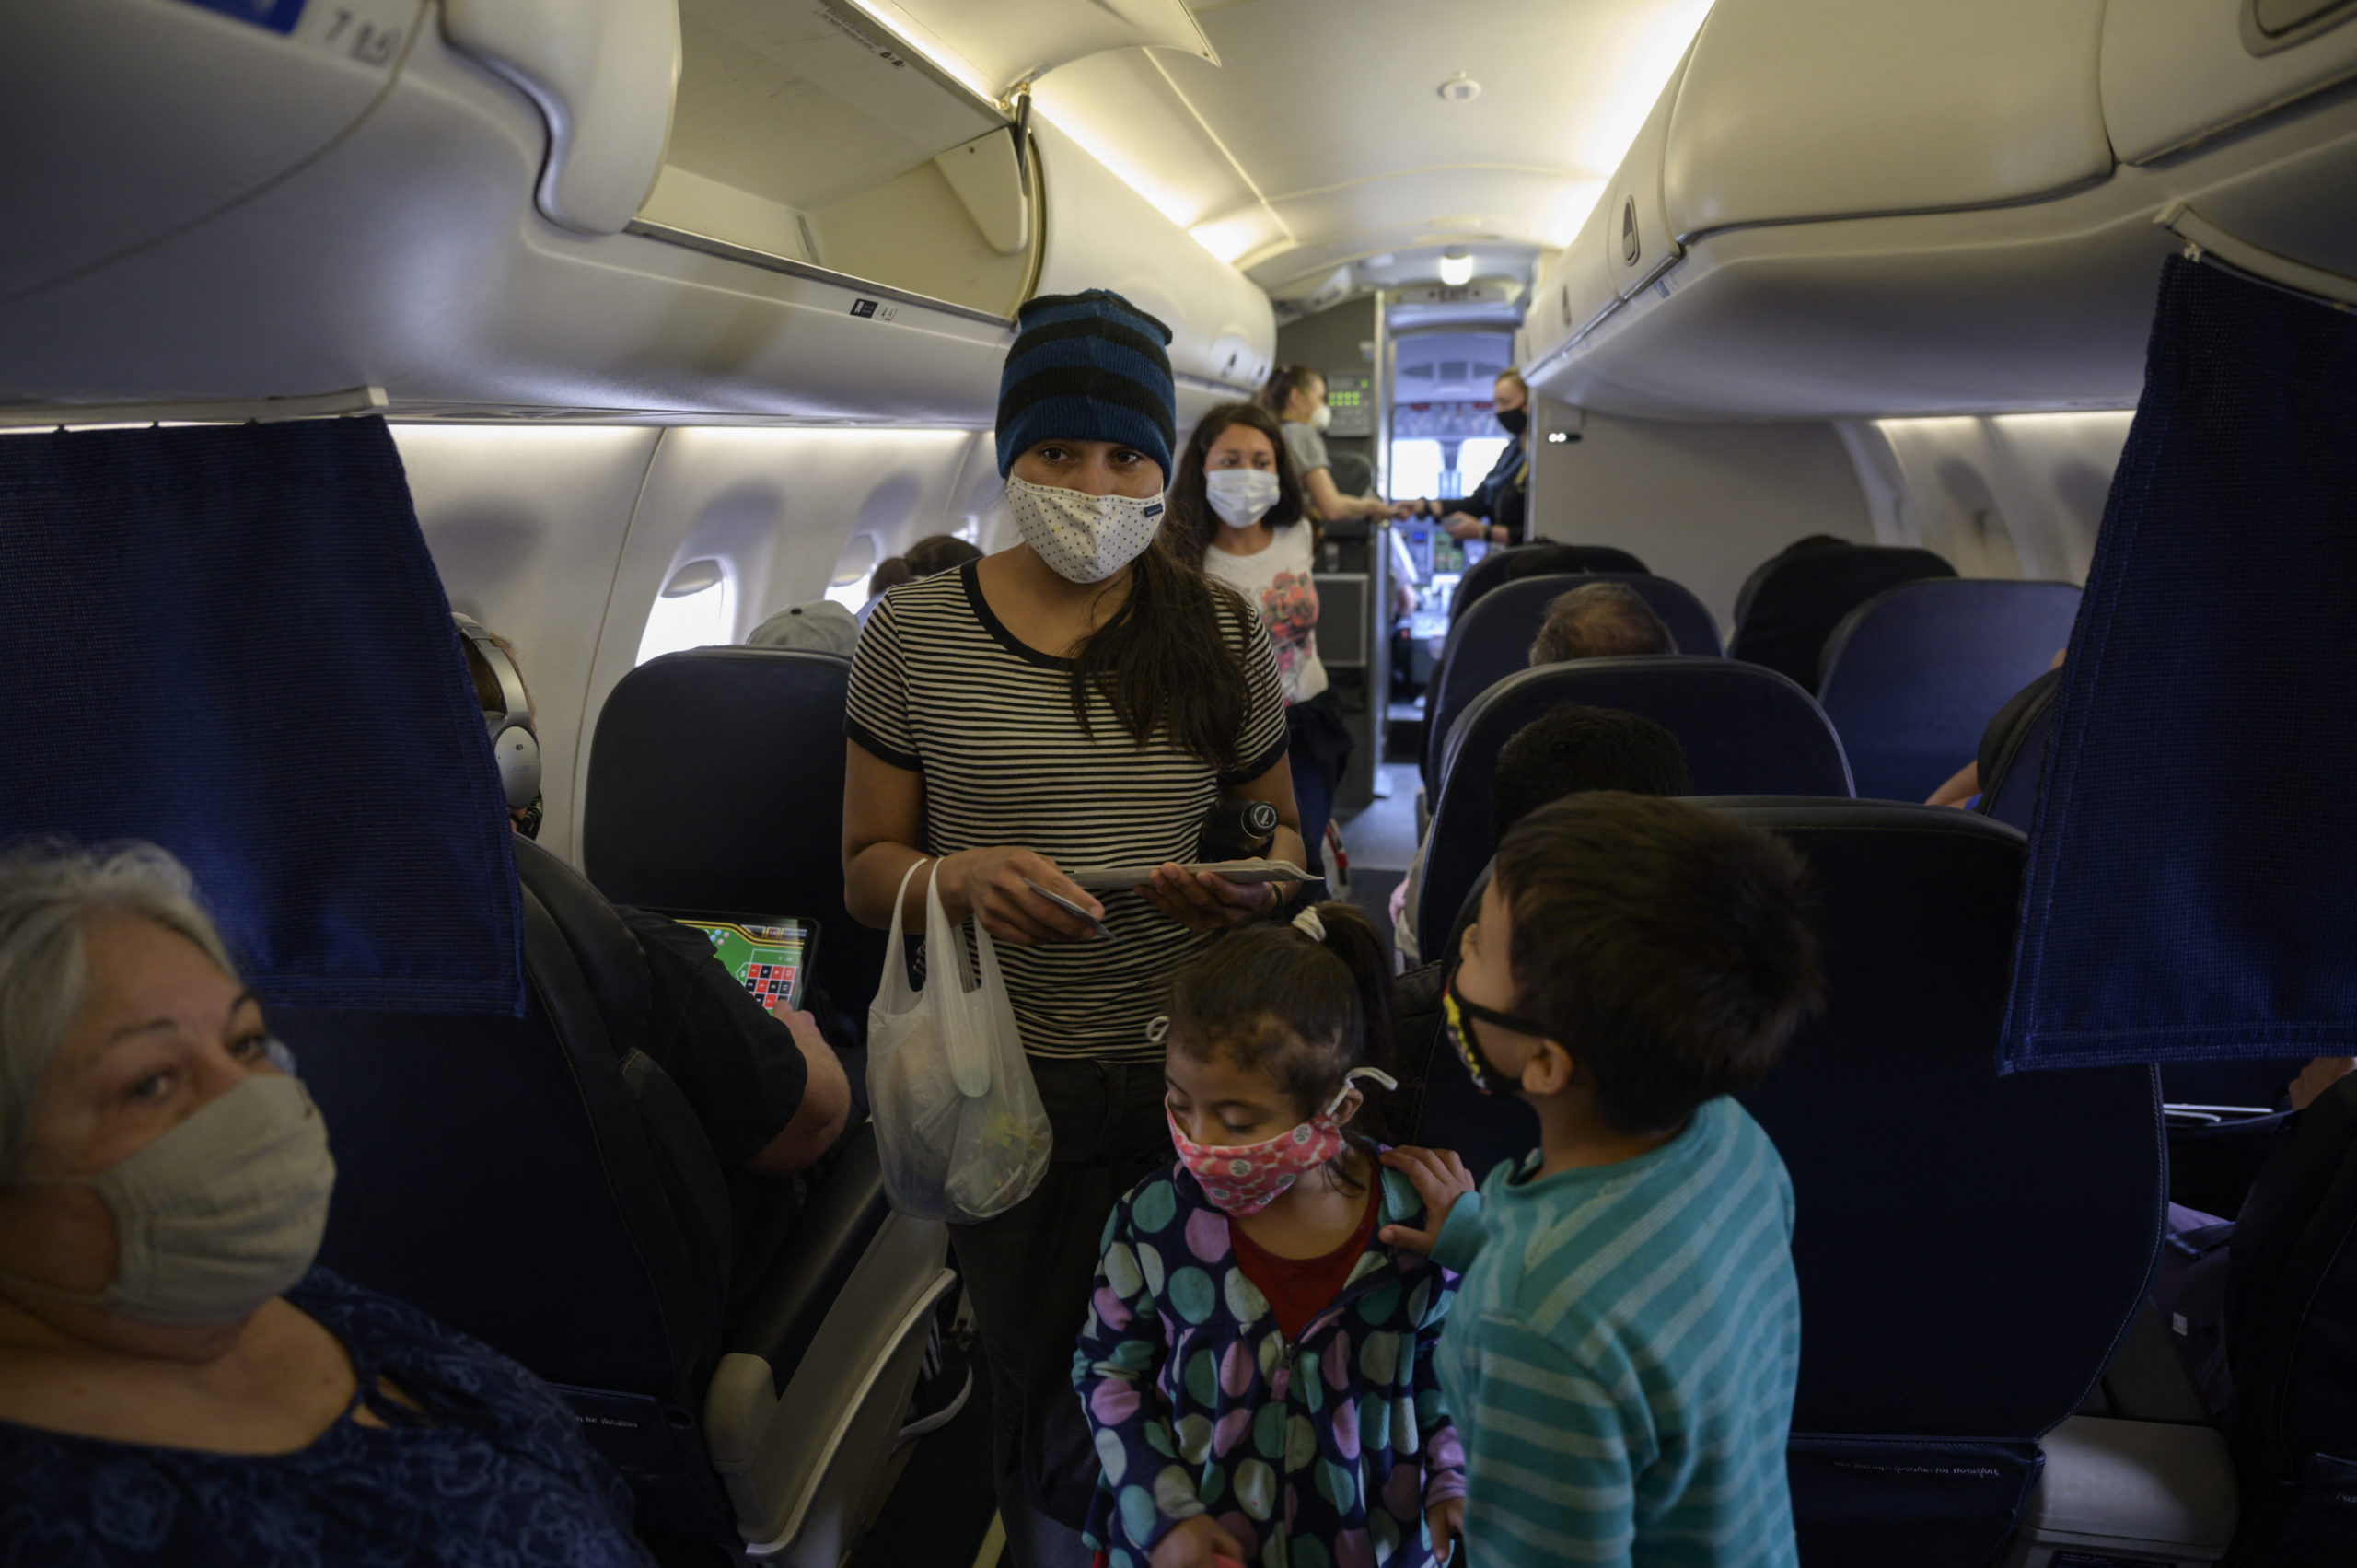 Reina (C L), Diana (C) and Dariel (R) from El Salvador board a flight on March 30, 2021 from Houston to New York, following their release from a US government holding facility for illegal migrants seeking asylum in McAllen, Texas. Photo by ED JONES/AFP via Getty Images)